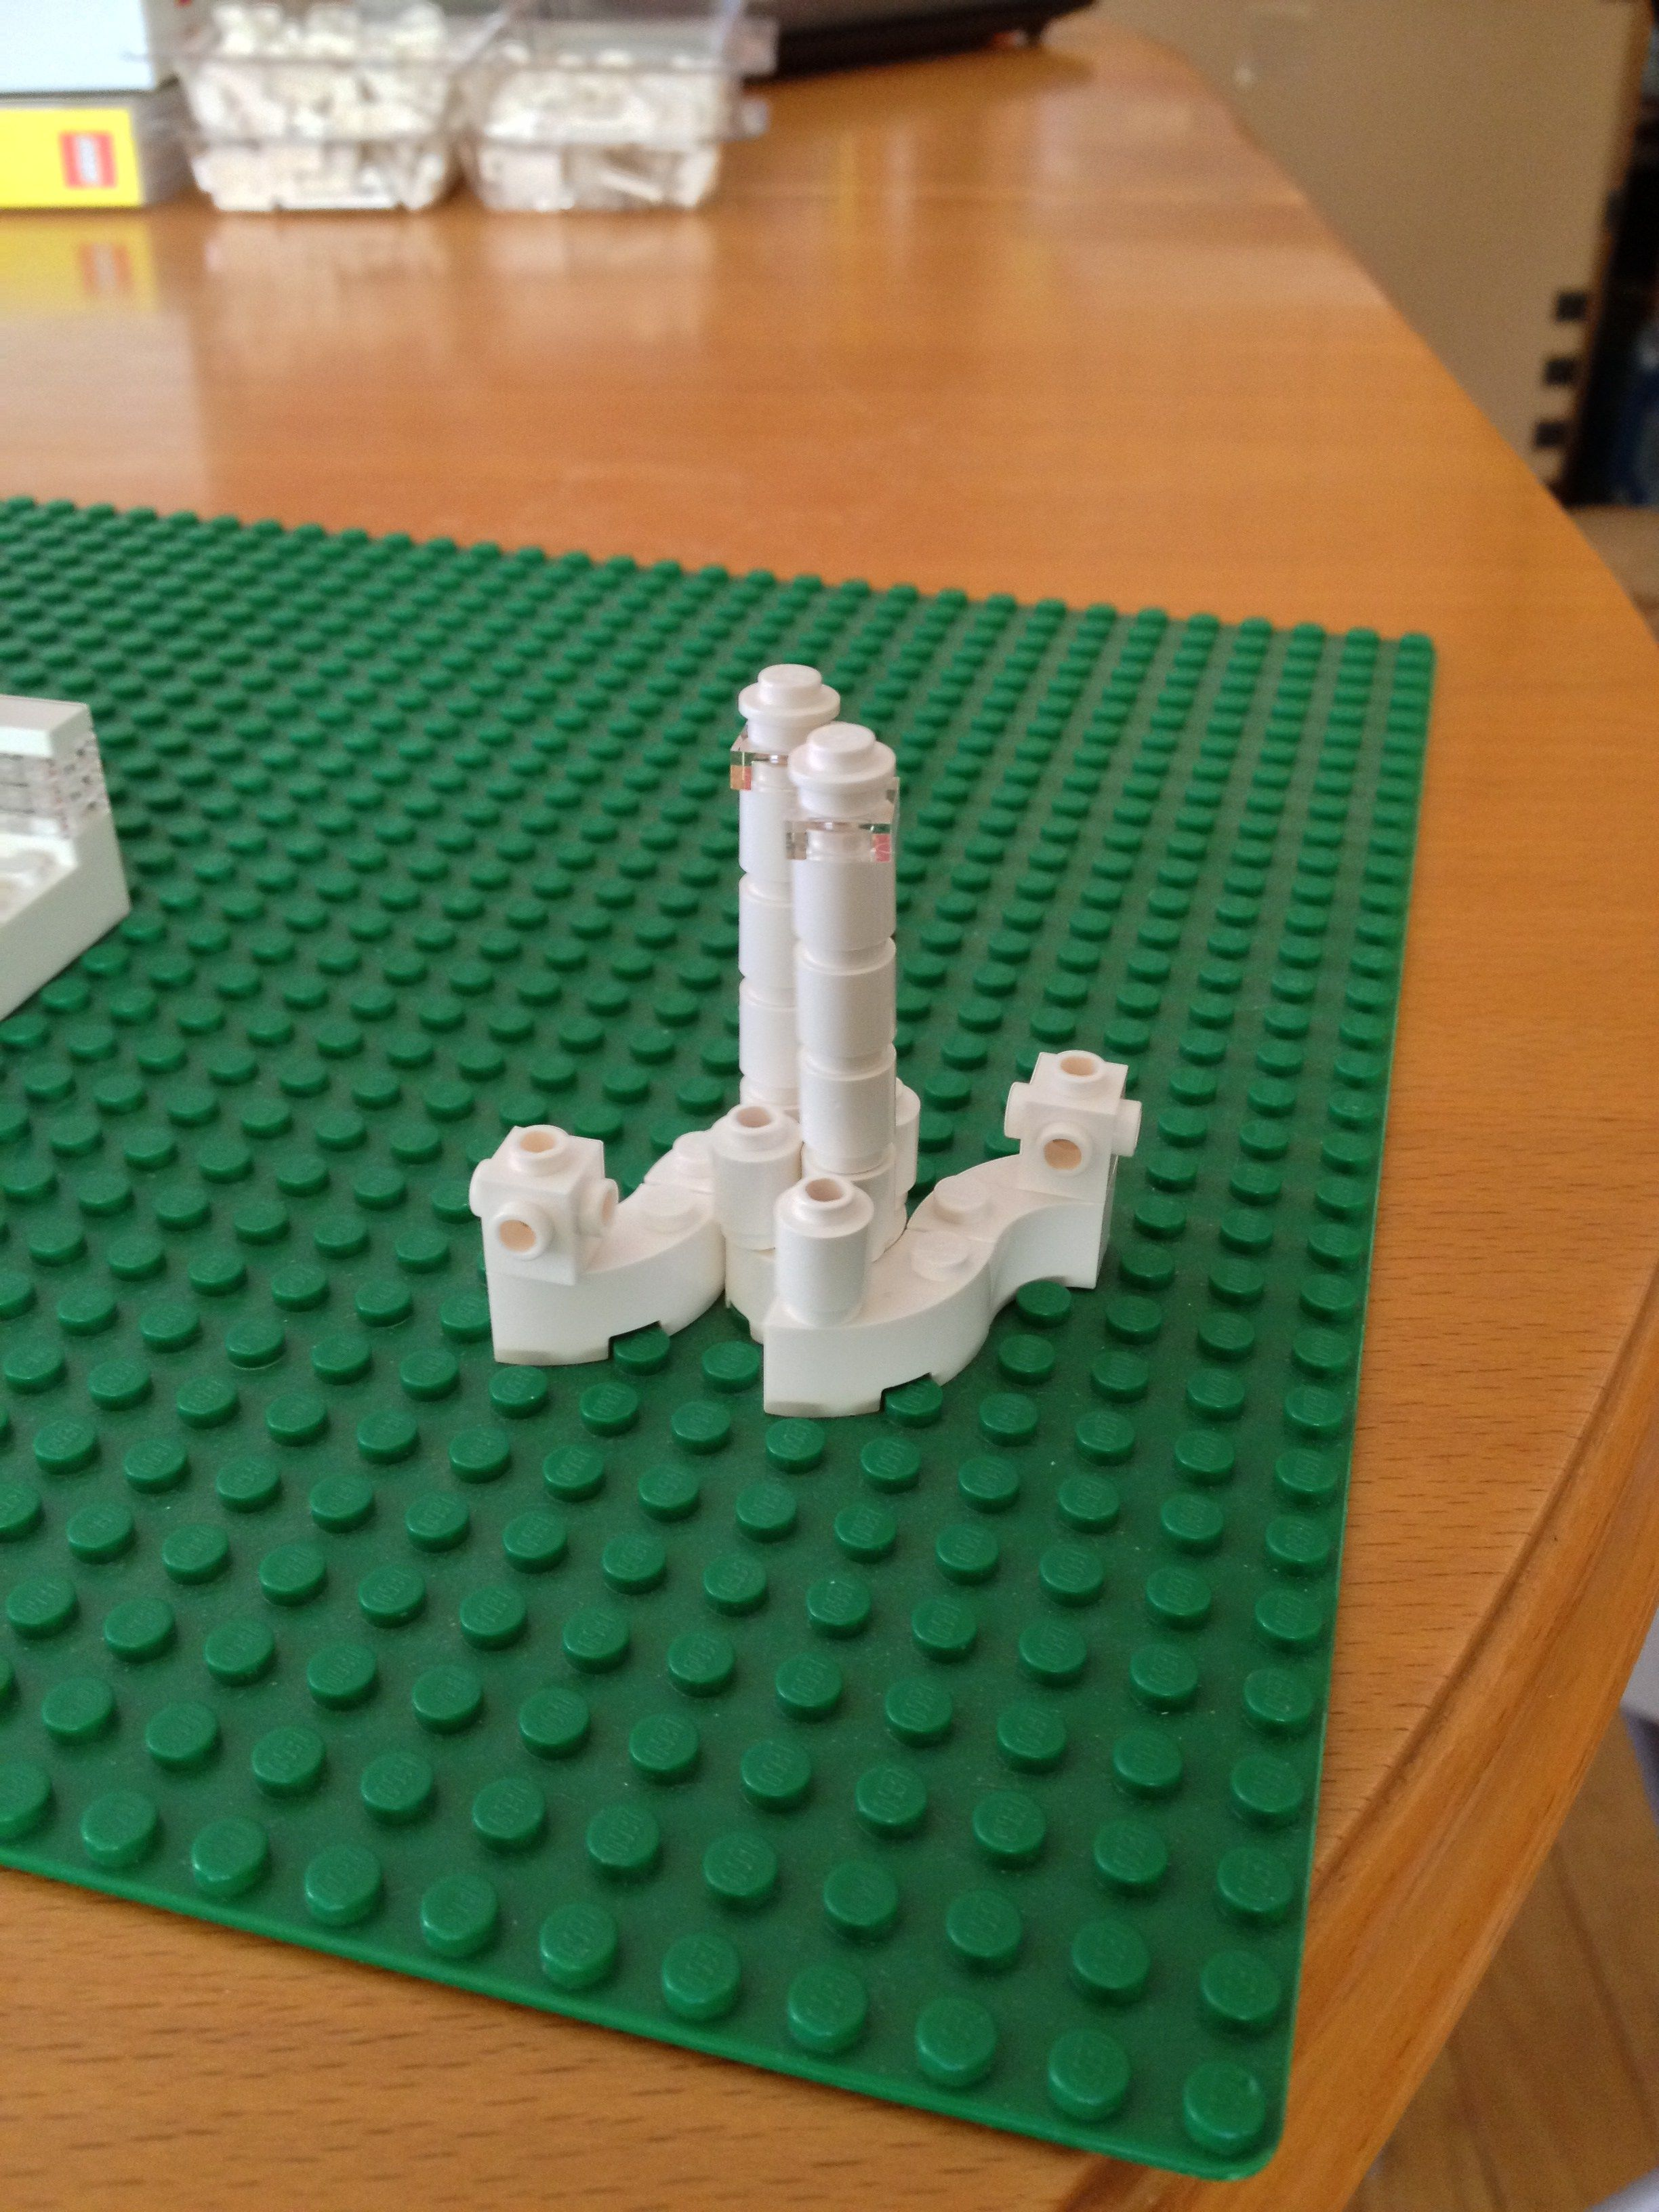 Design Your Own Structures With Lego Architecture Studio Lego